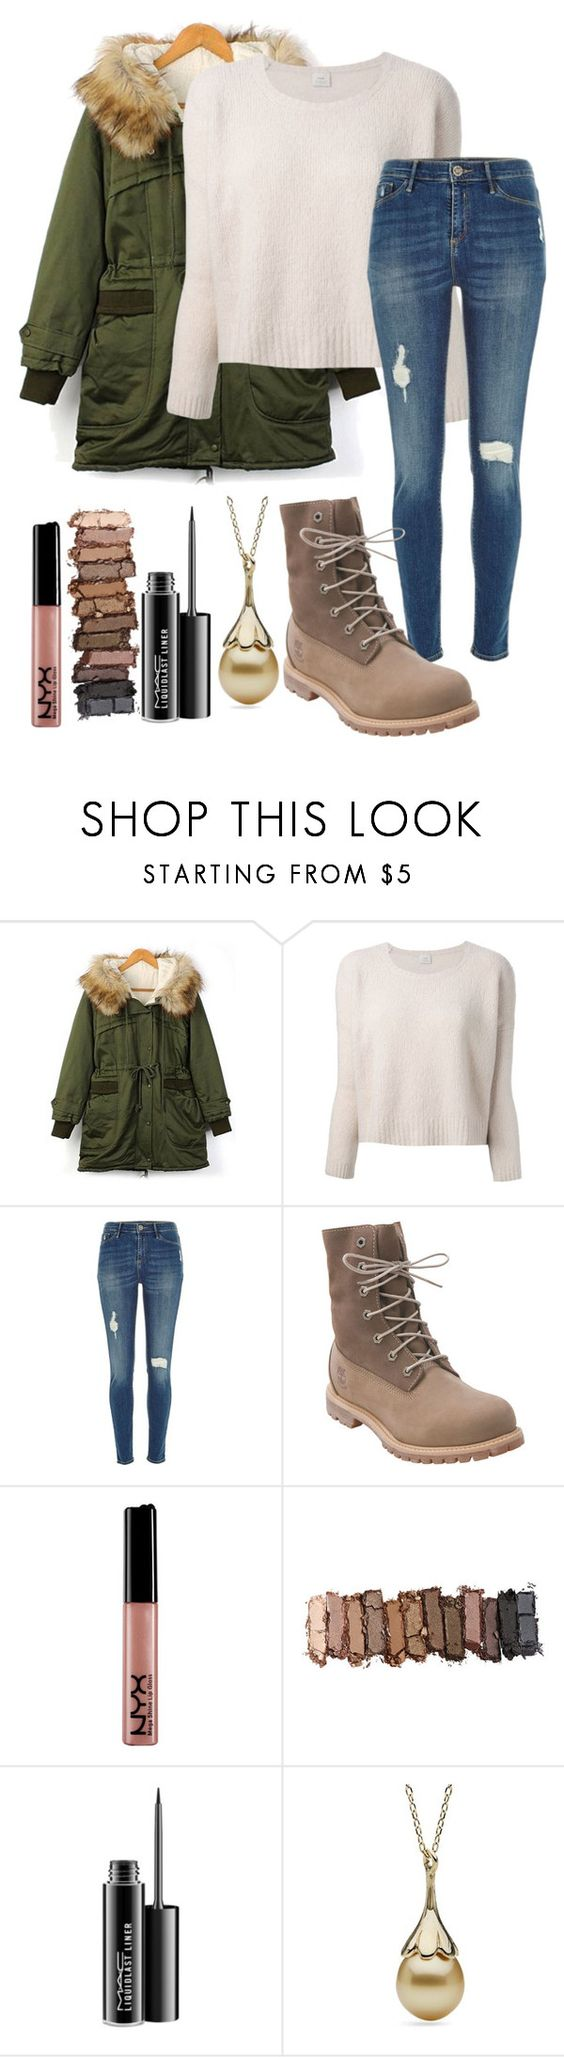 """""""Baby It's Cold Outside"""" by jnoelleh ❤ liked on Polyvore featuring Pinko, River Island, Timberland, Urban Decay and MAC Cosmetics"""